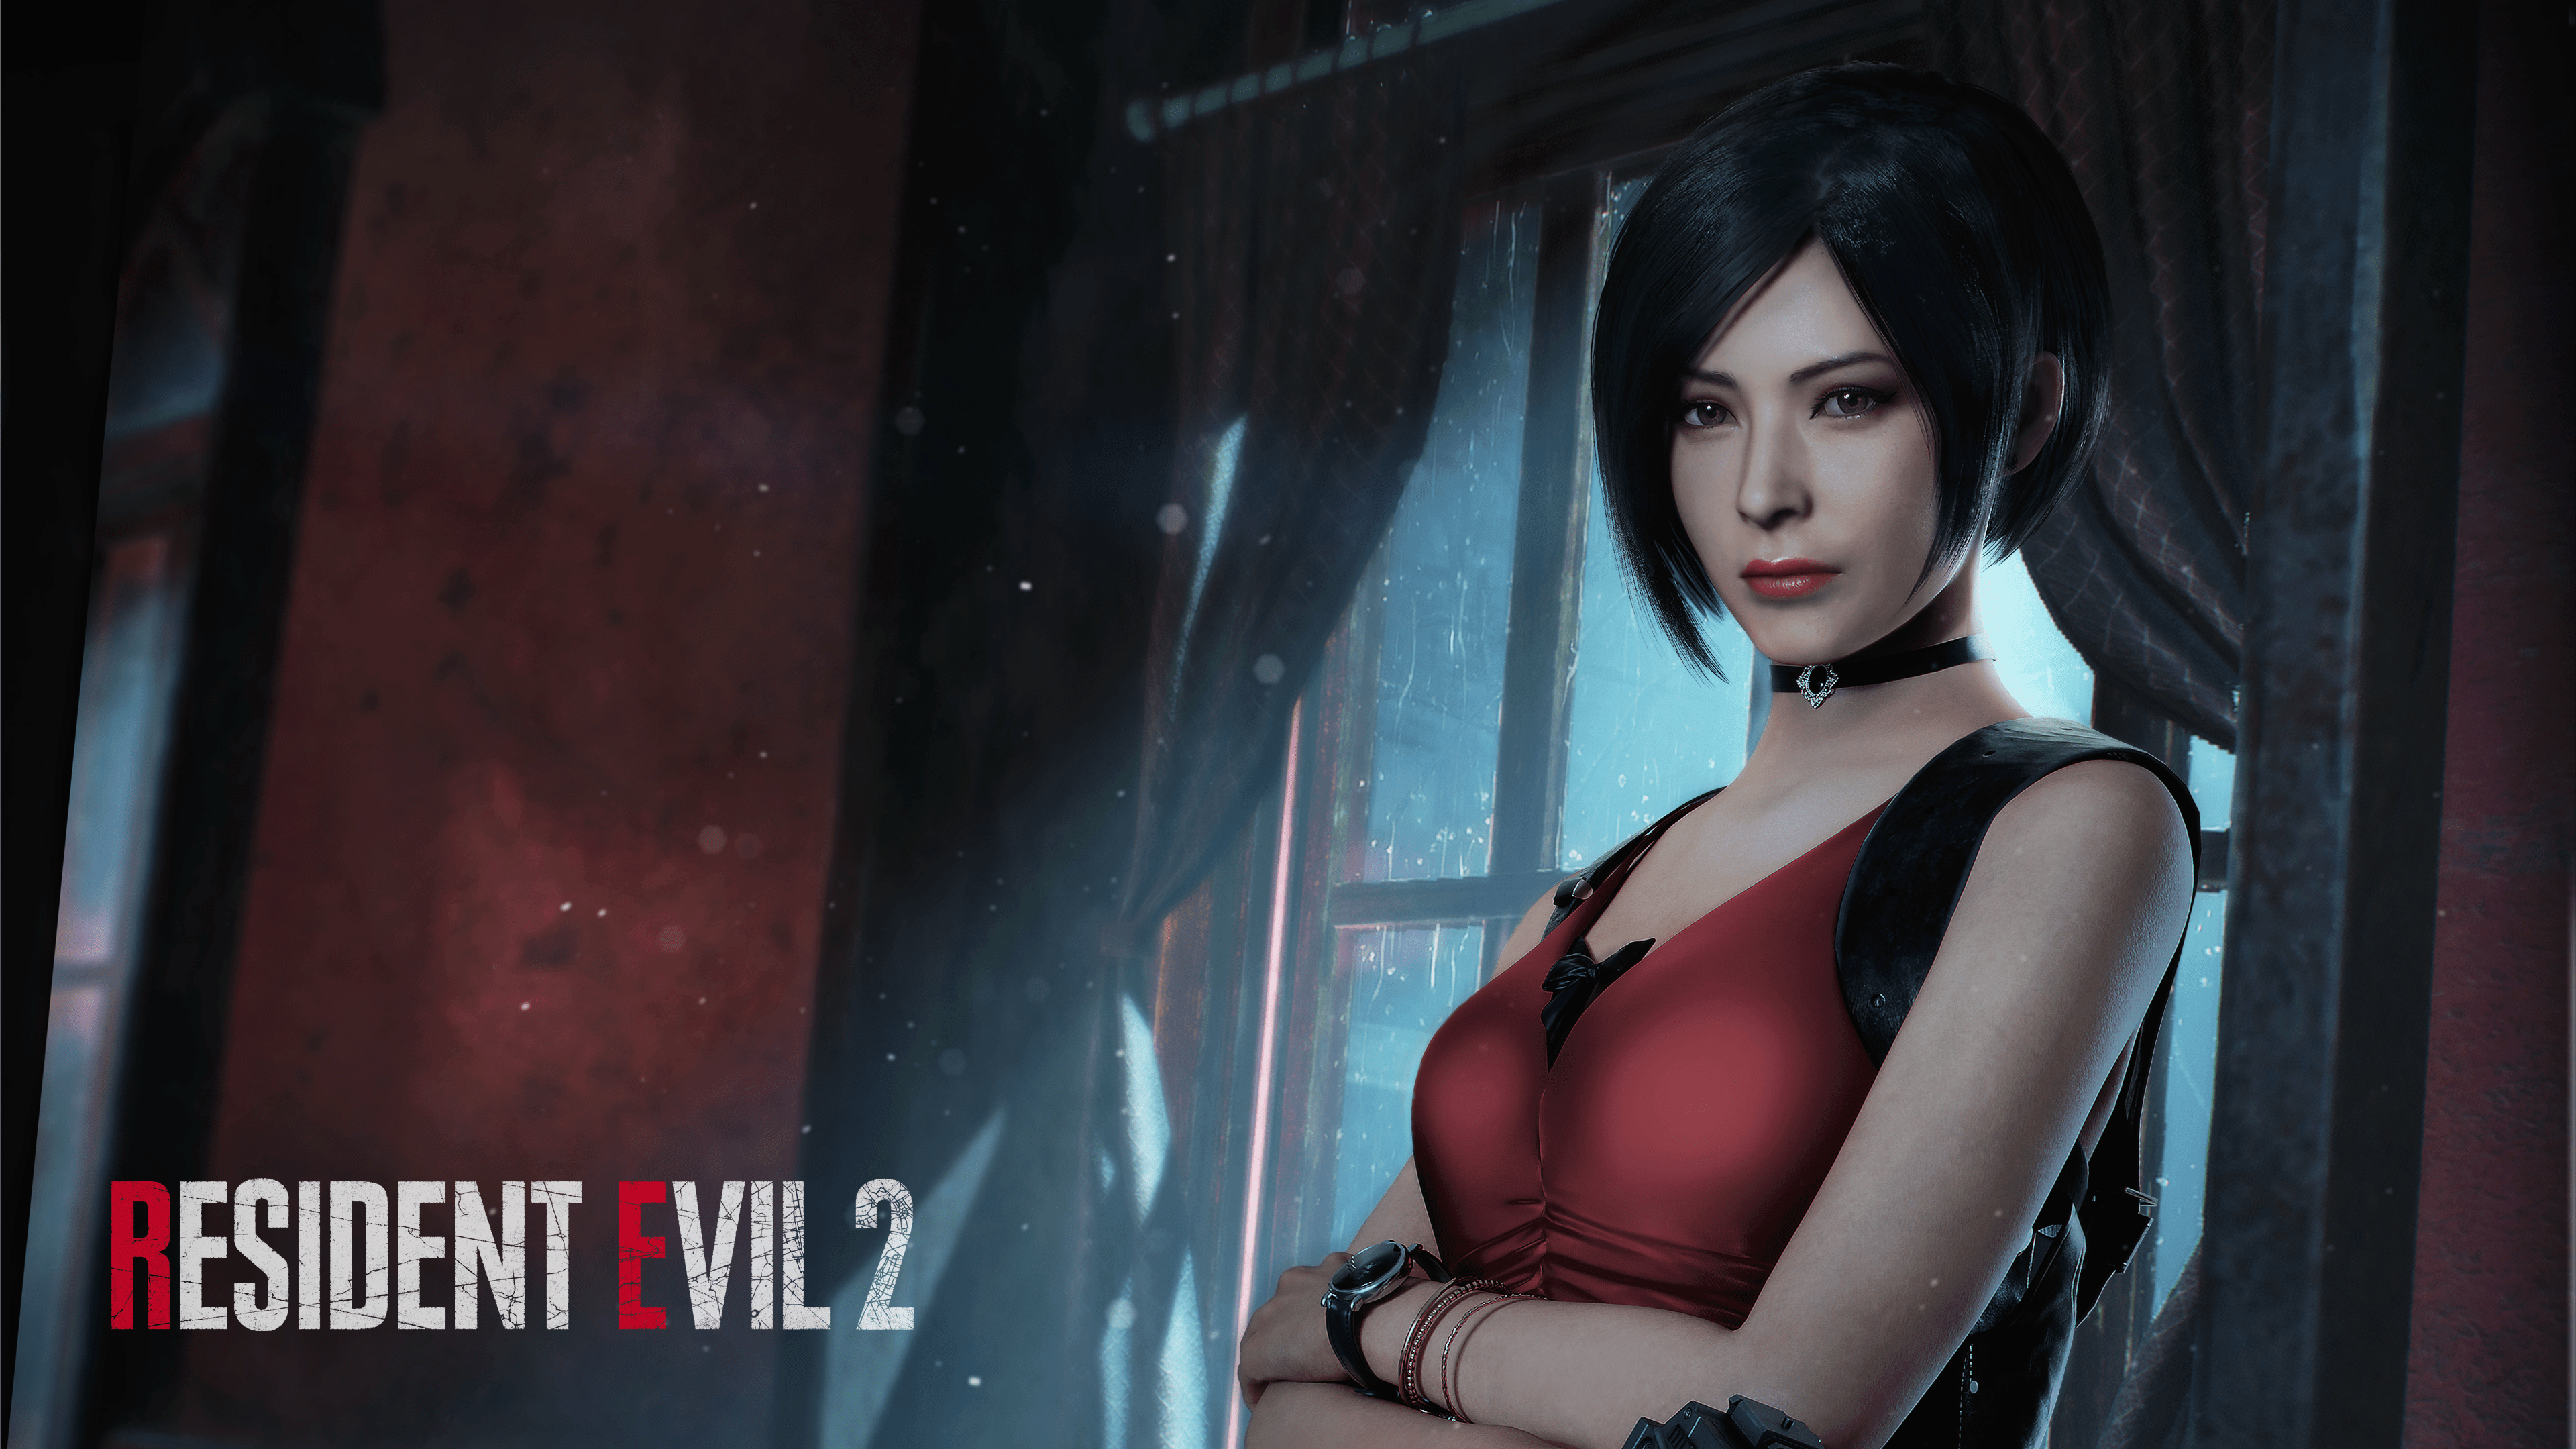 Resident Evil 2 Remake Hd Wallpapers 7wallpapers Net